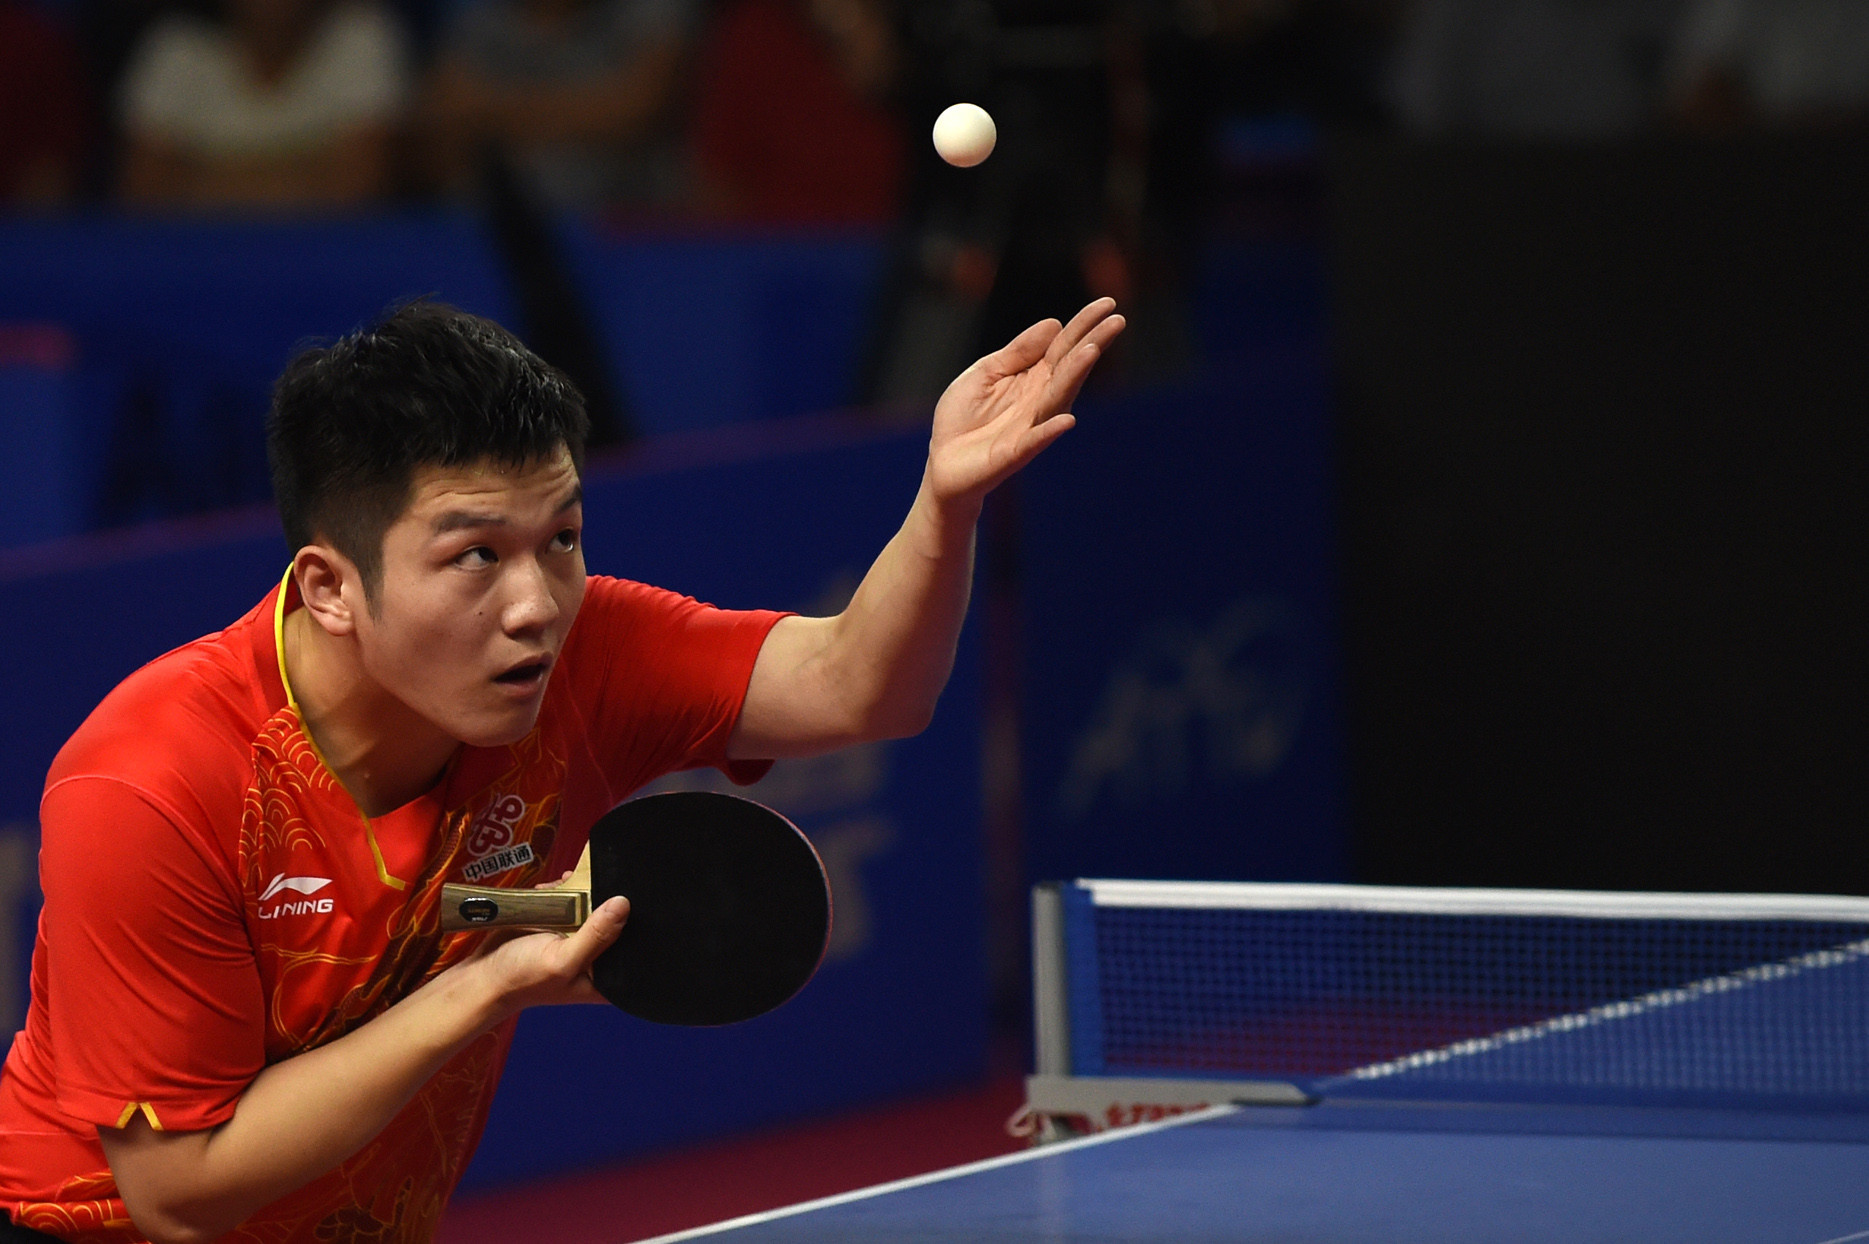 Top seeds Fan and Chen safely through to quarter-finals at ITTF Hungarian Open